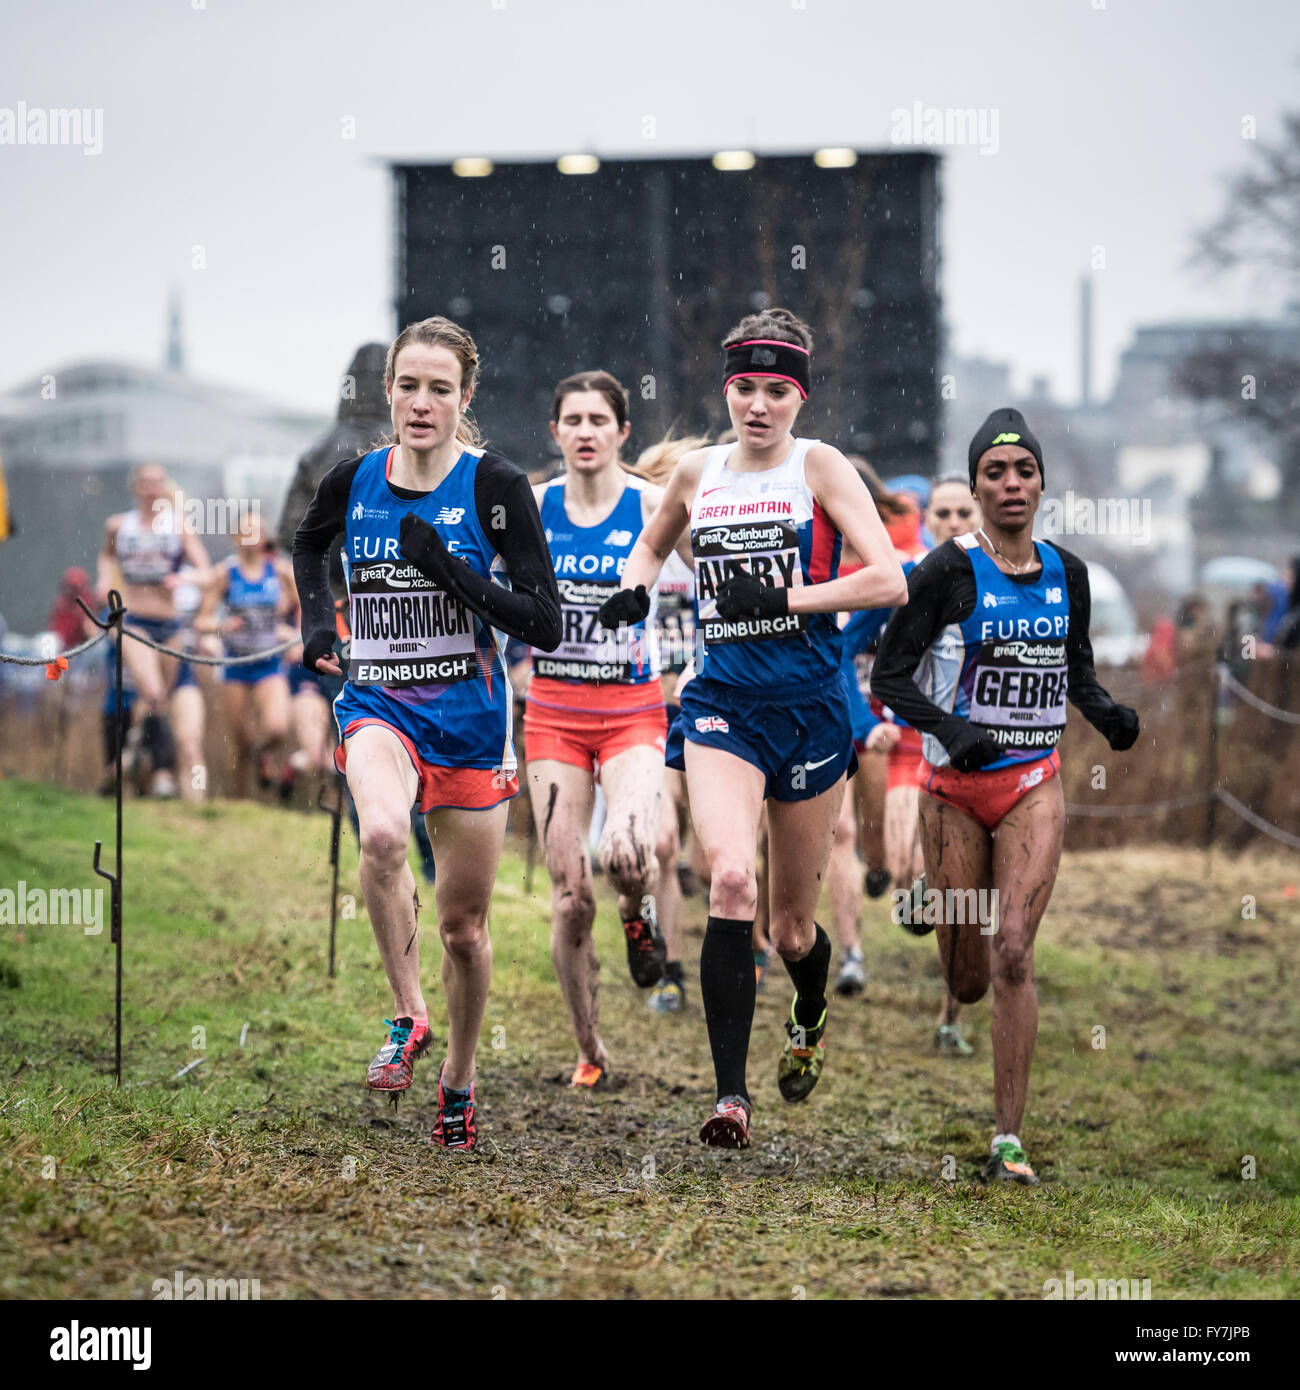 Kate Avery leads the Women's 6K at the Great Edinburgh XCountry. 9th January 2016. - Stock Image